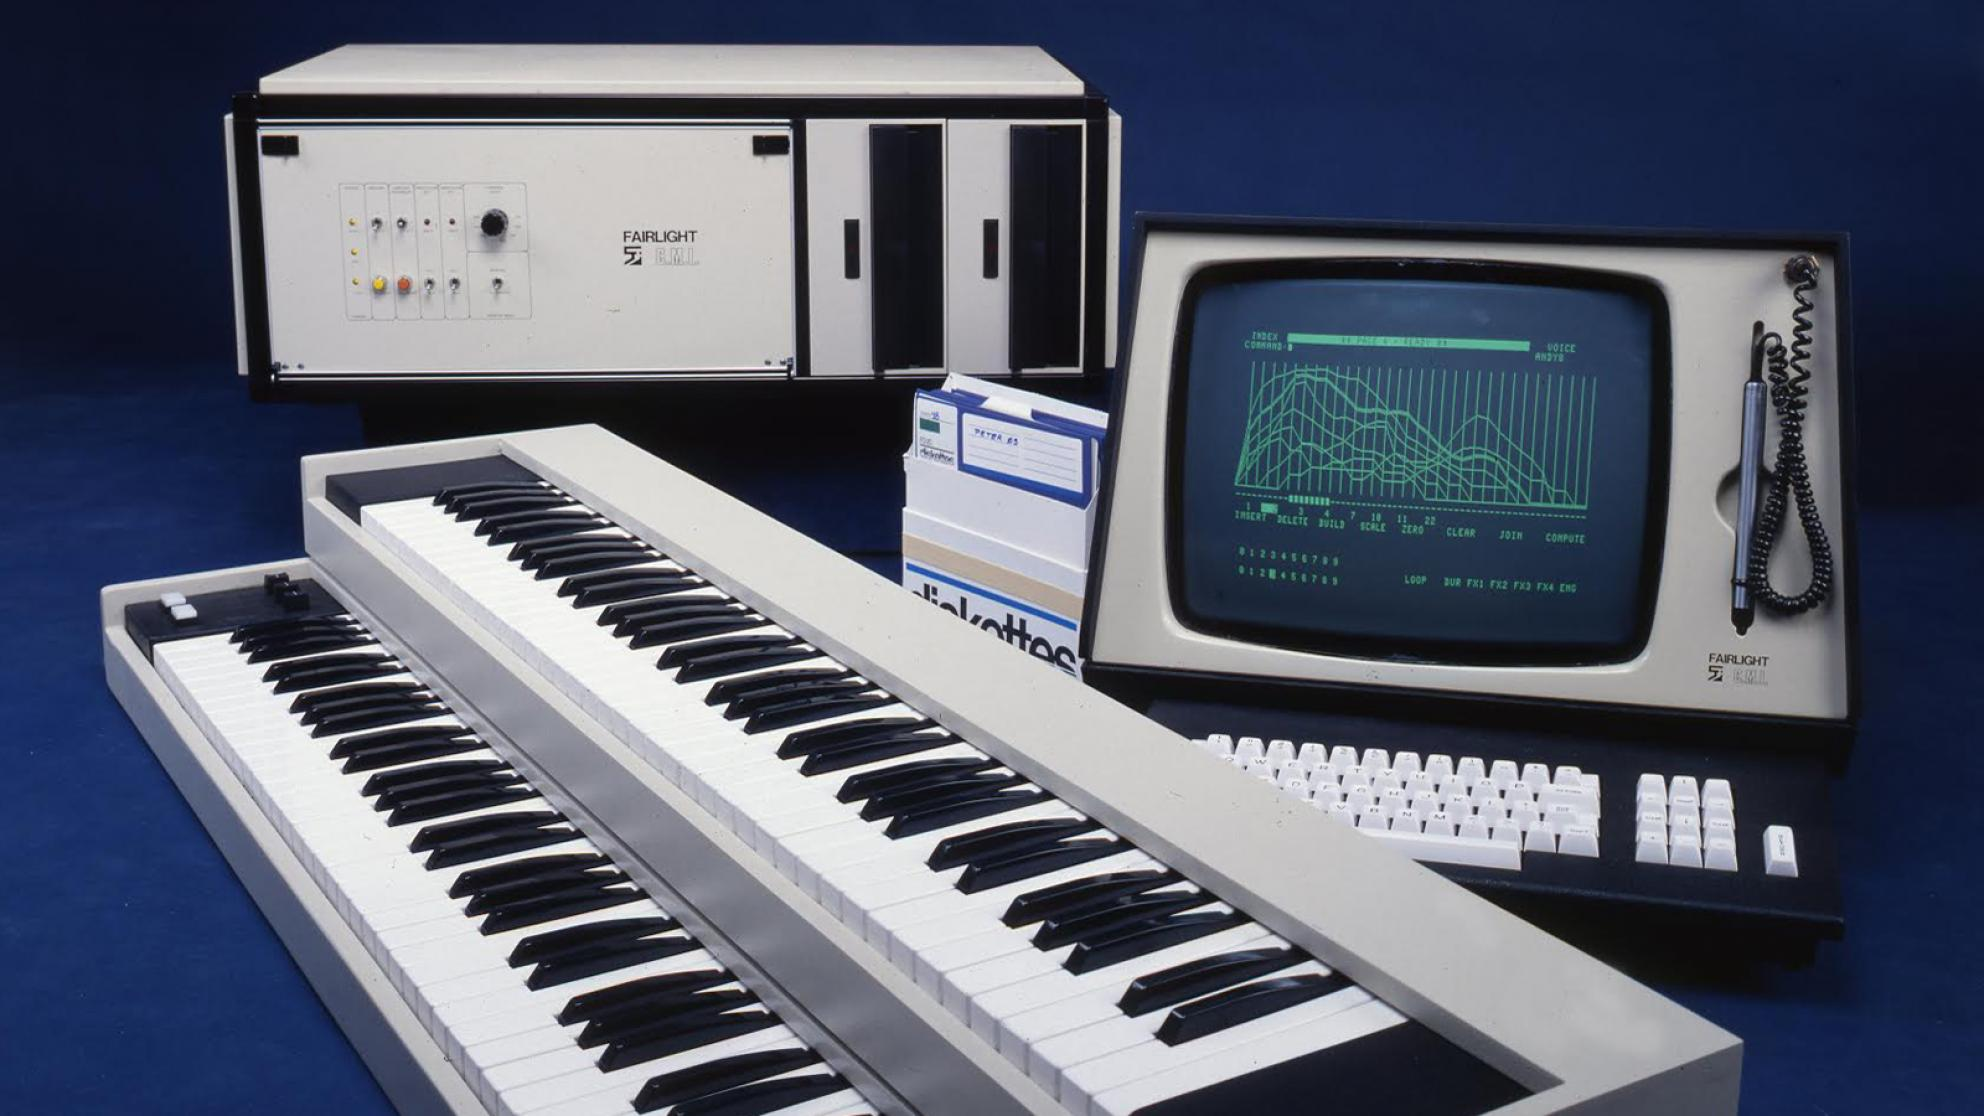 The Fairlight sampling synthesizer showing keyboard and user display monitor.